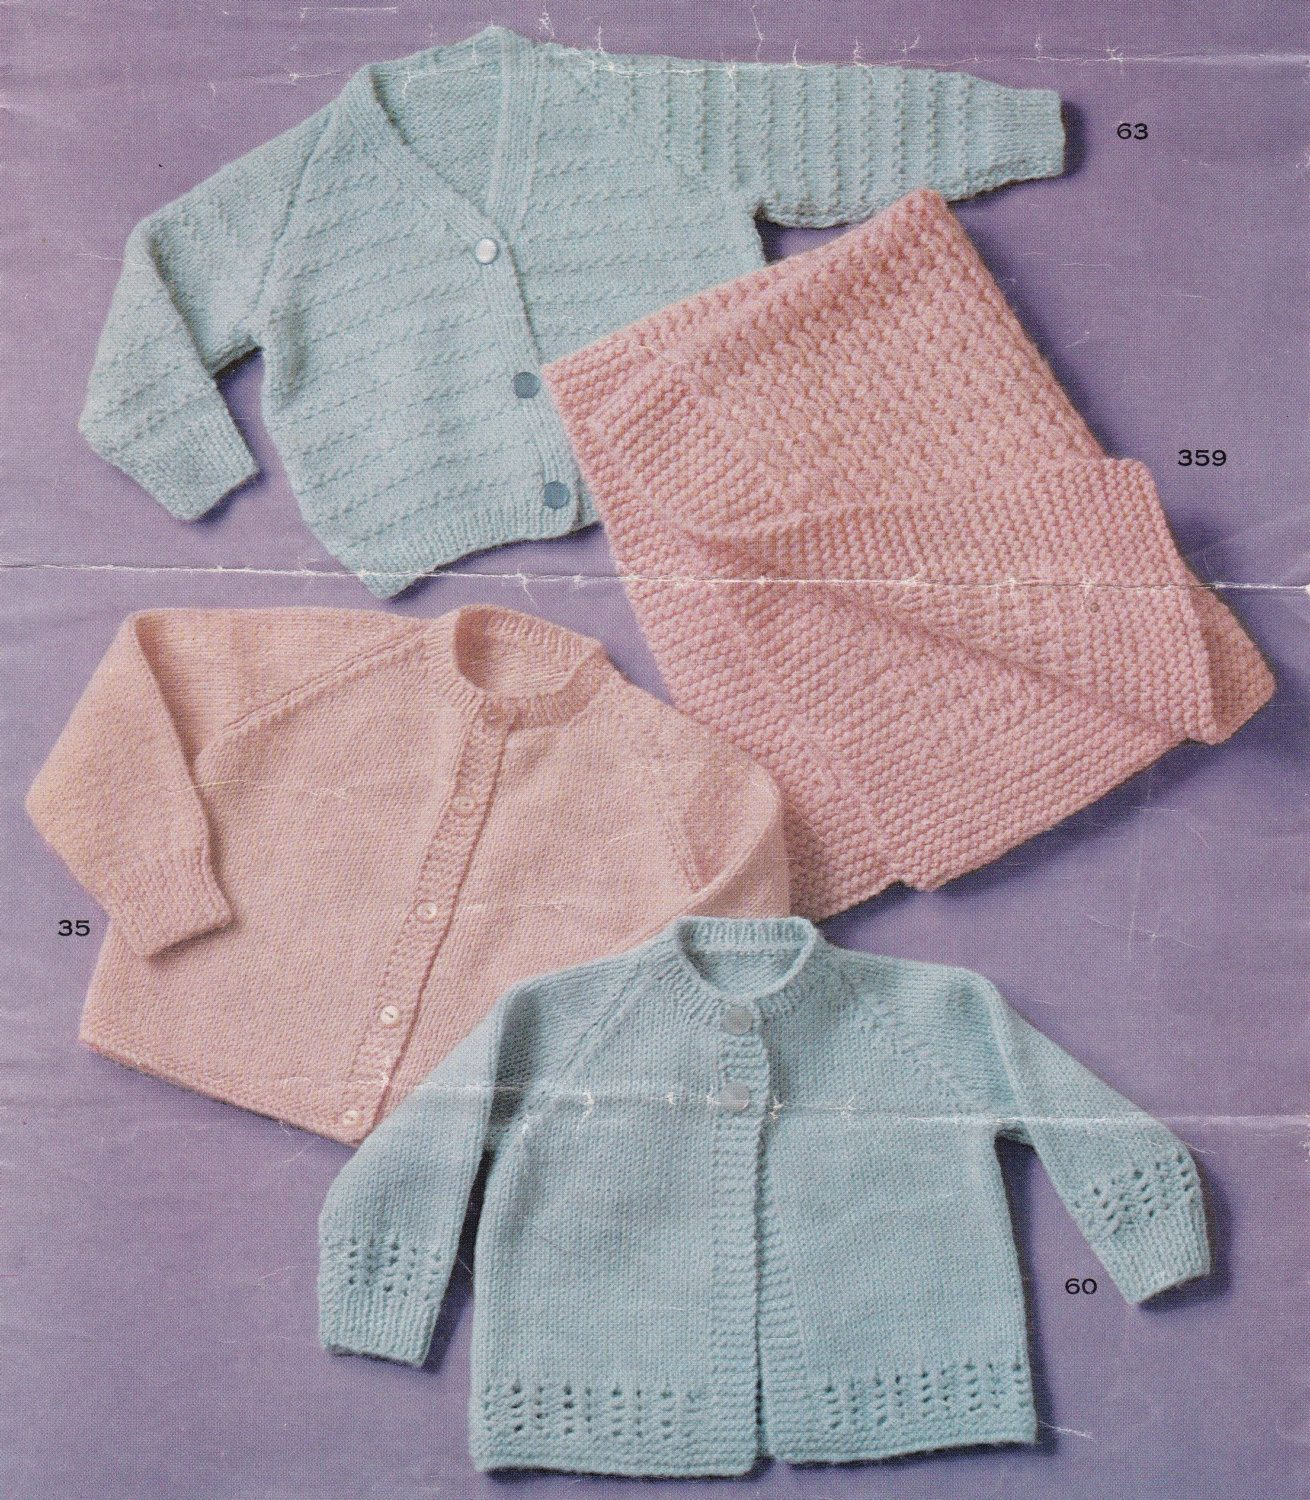 Baby Knitting Pattern Instant Download 5 ply Knitting Pram Cover and ...